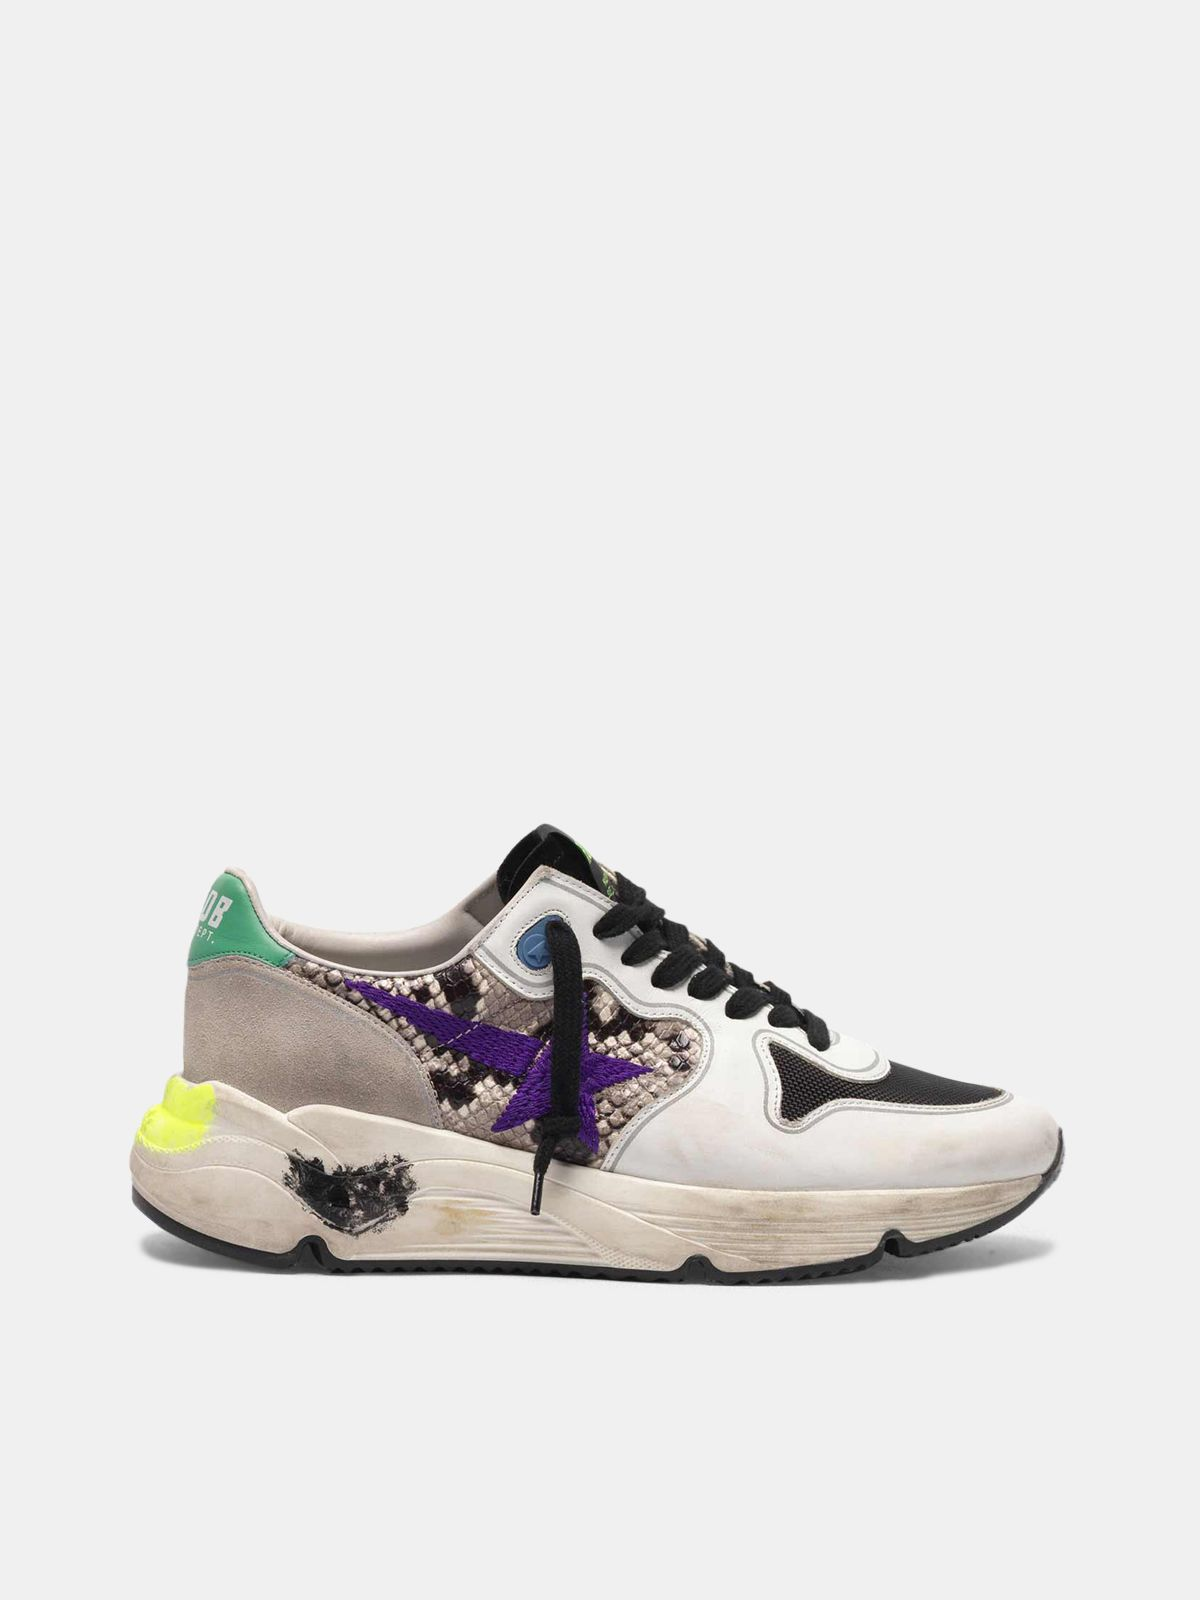 Golden Goose - Running Sole sneakers in snakeskin print leather with purple embroidered star in